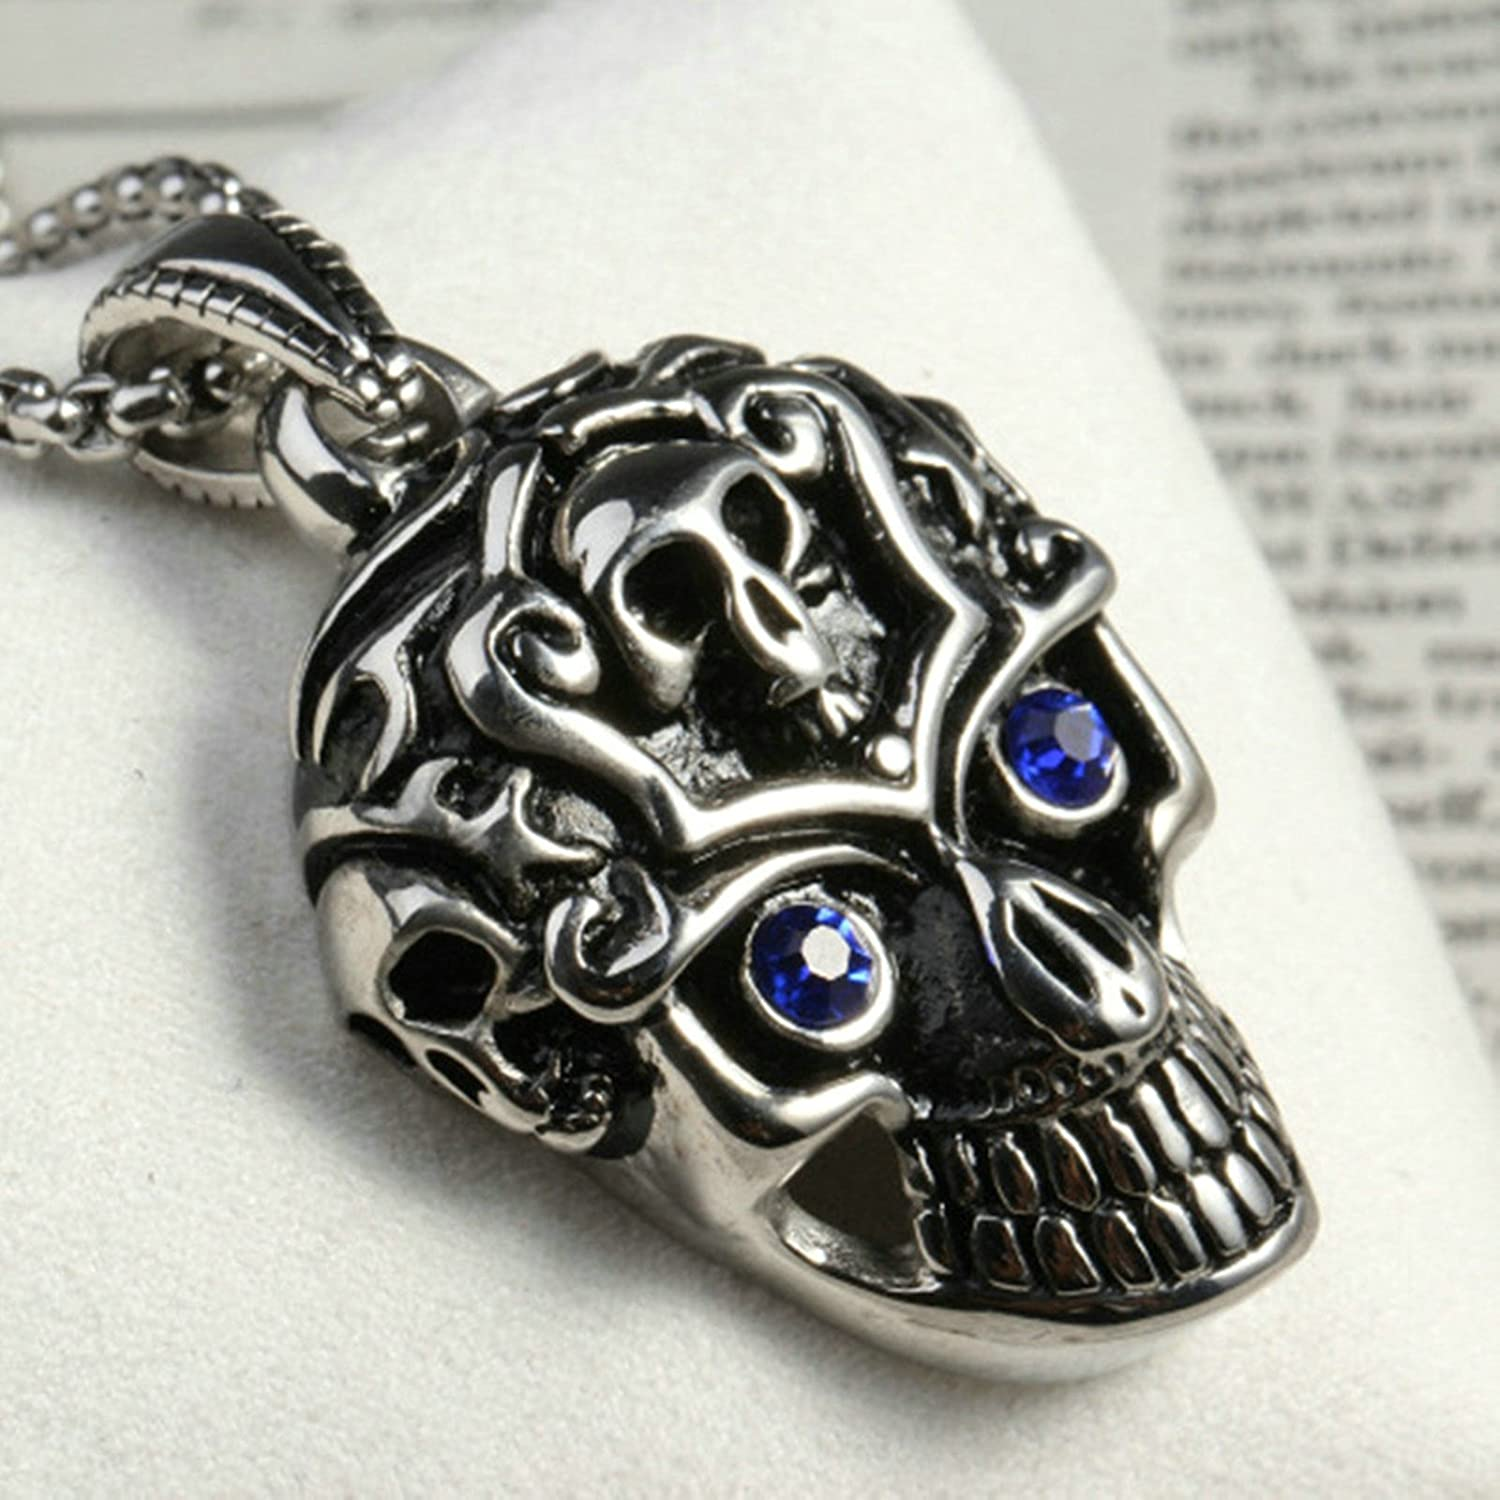 Gnzoe Jewelry Mens Stainless Steel Gothic Skull Biker Blue Eyes Necklace Pendant Silver